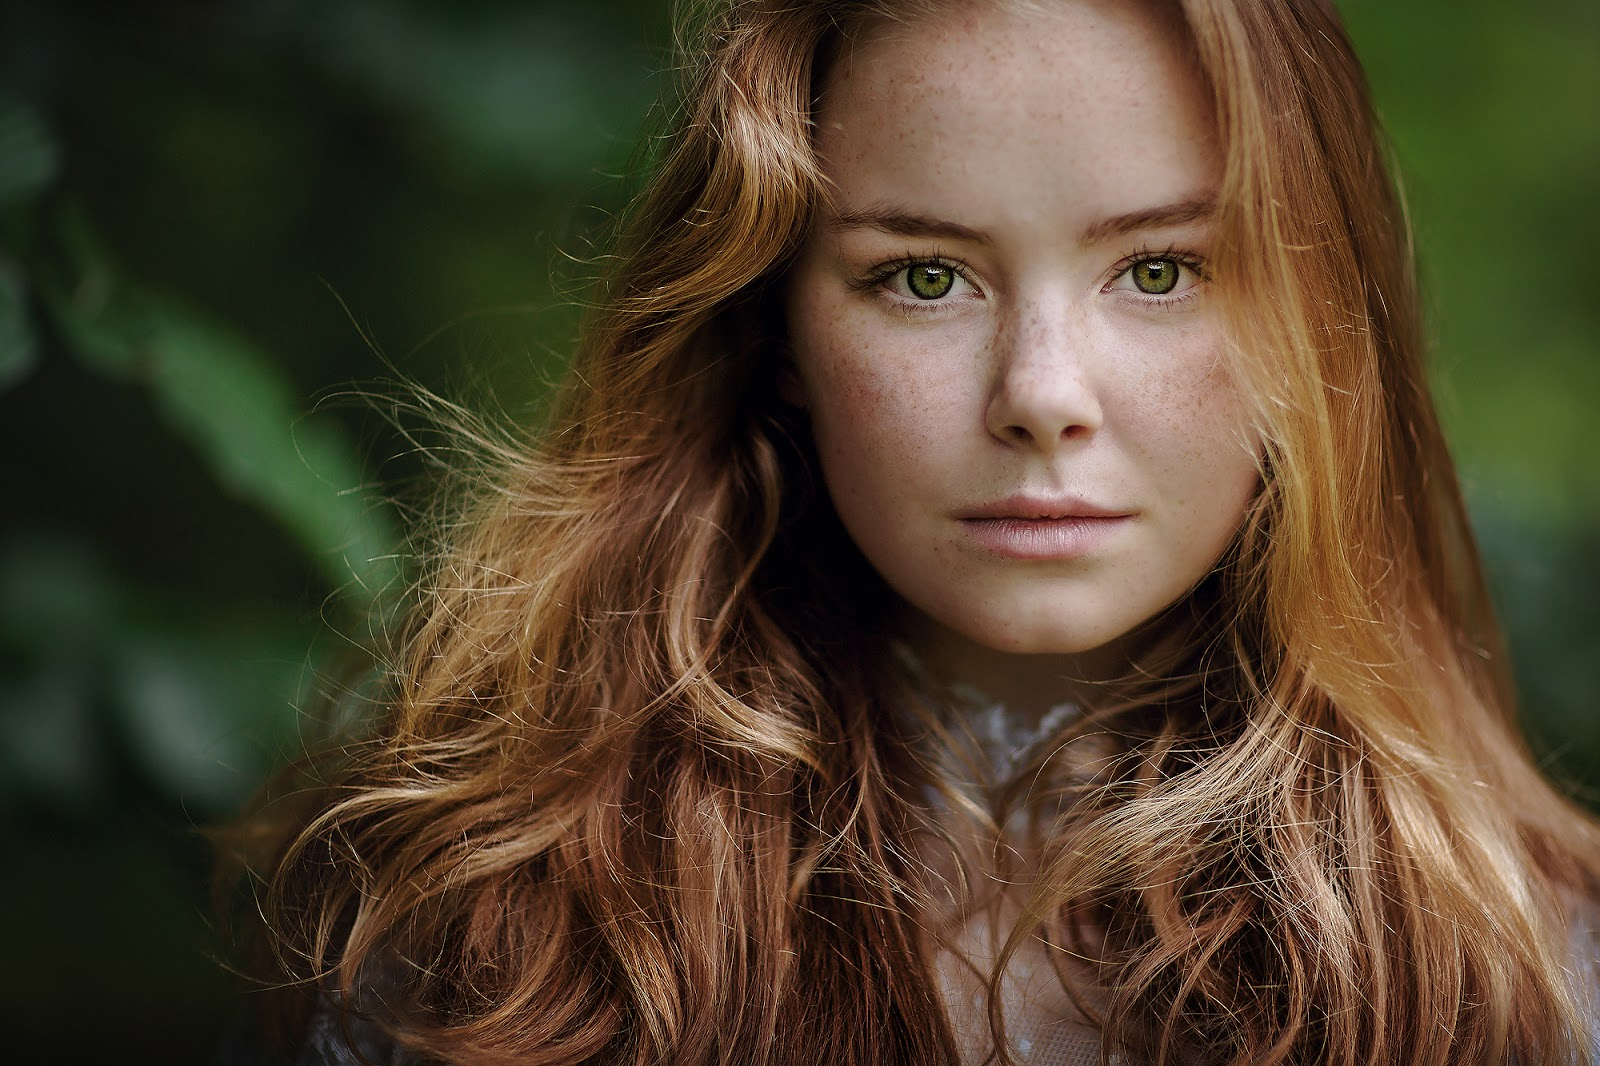 Canon 85mm portrait of a gorgeous young woman with red hair and freckles by Willie Kers